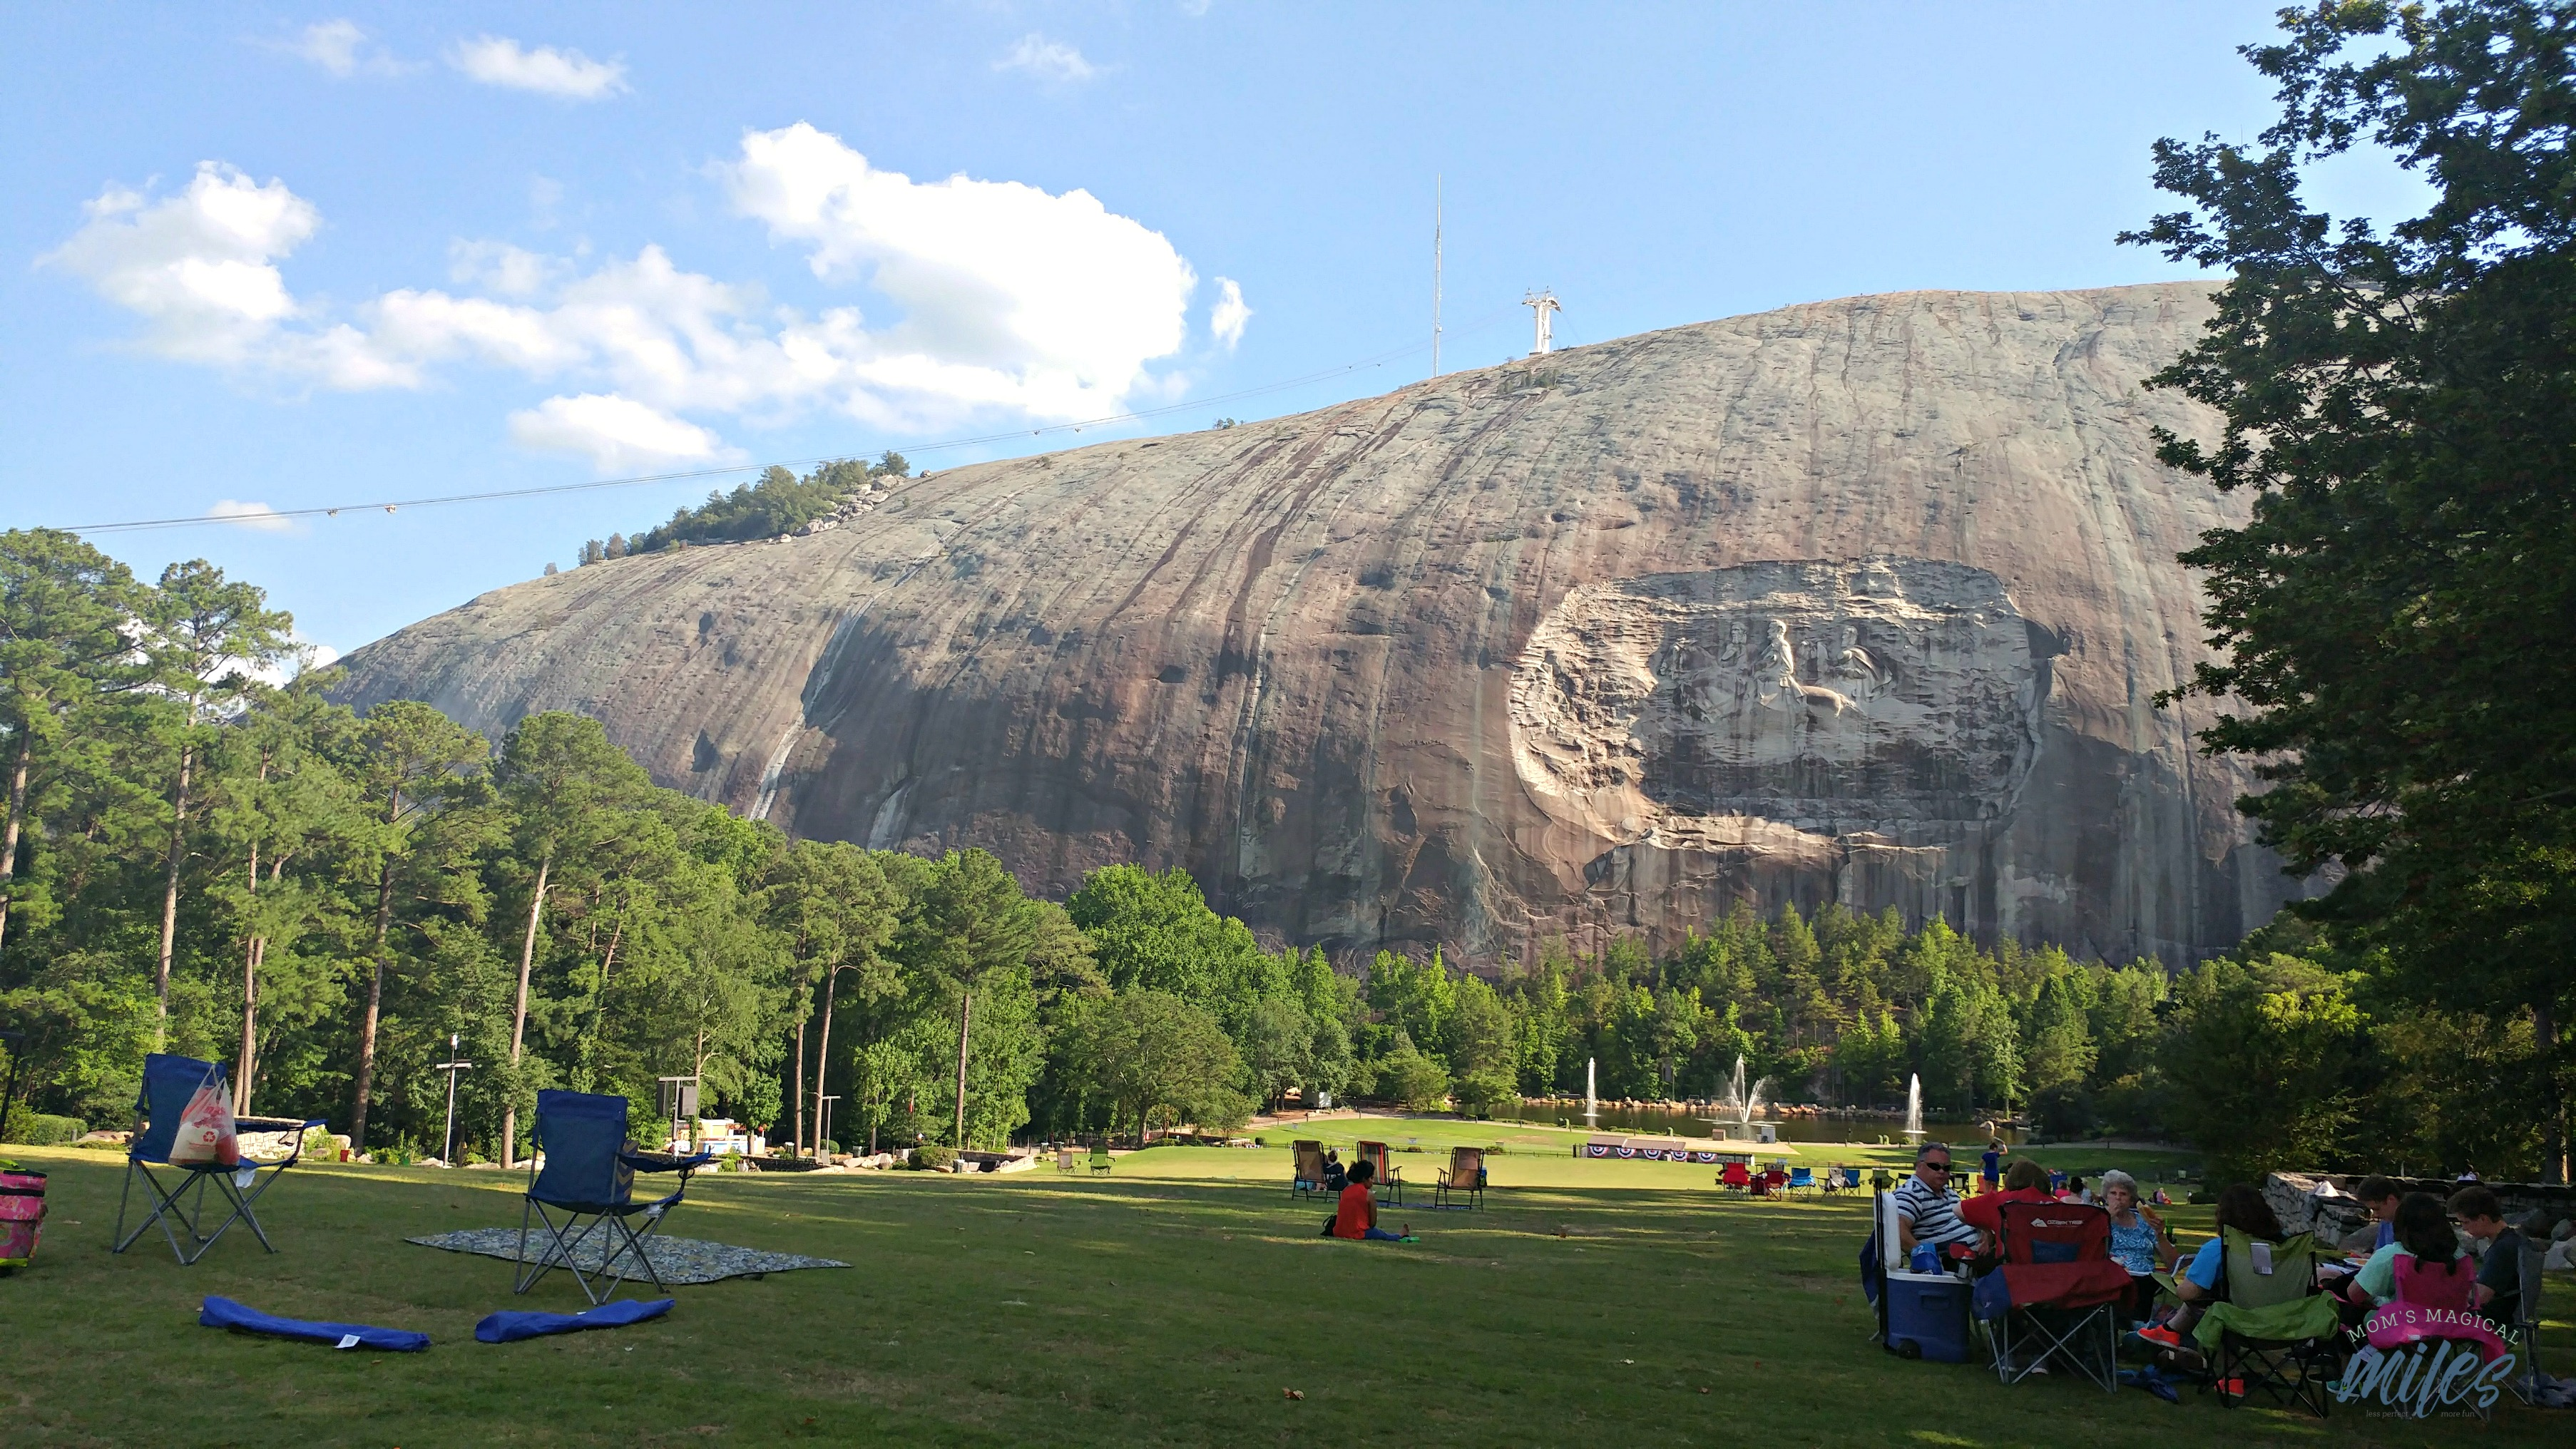 Spend some time relaxing on the Great Lawn at Stone Mountain Park and then take in the Laser Show!